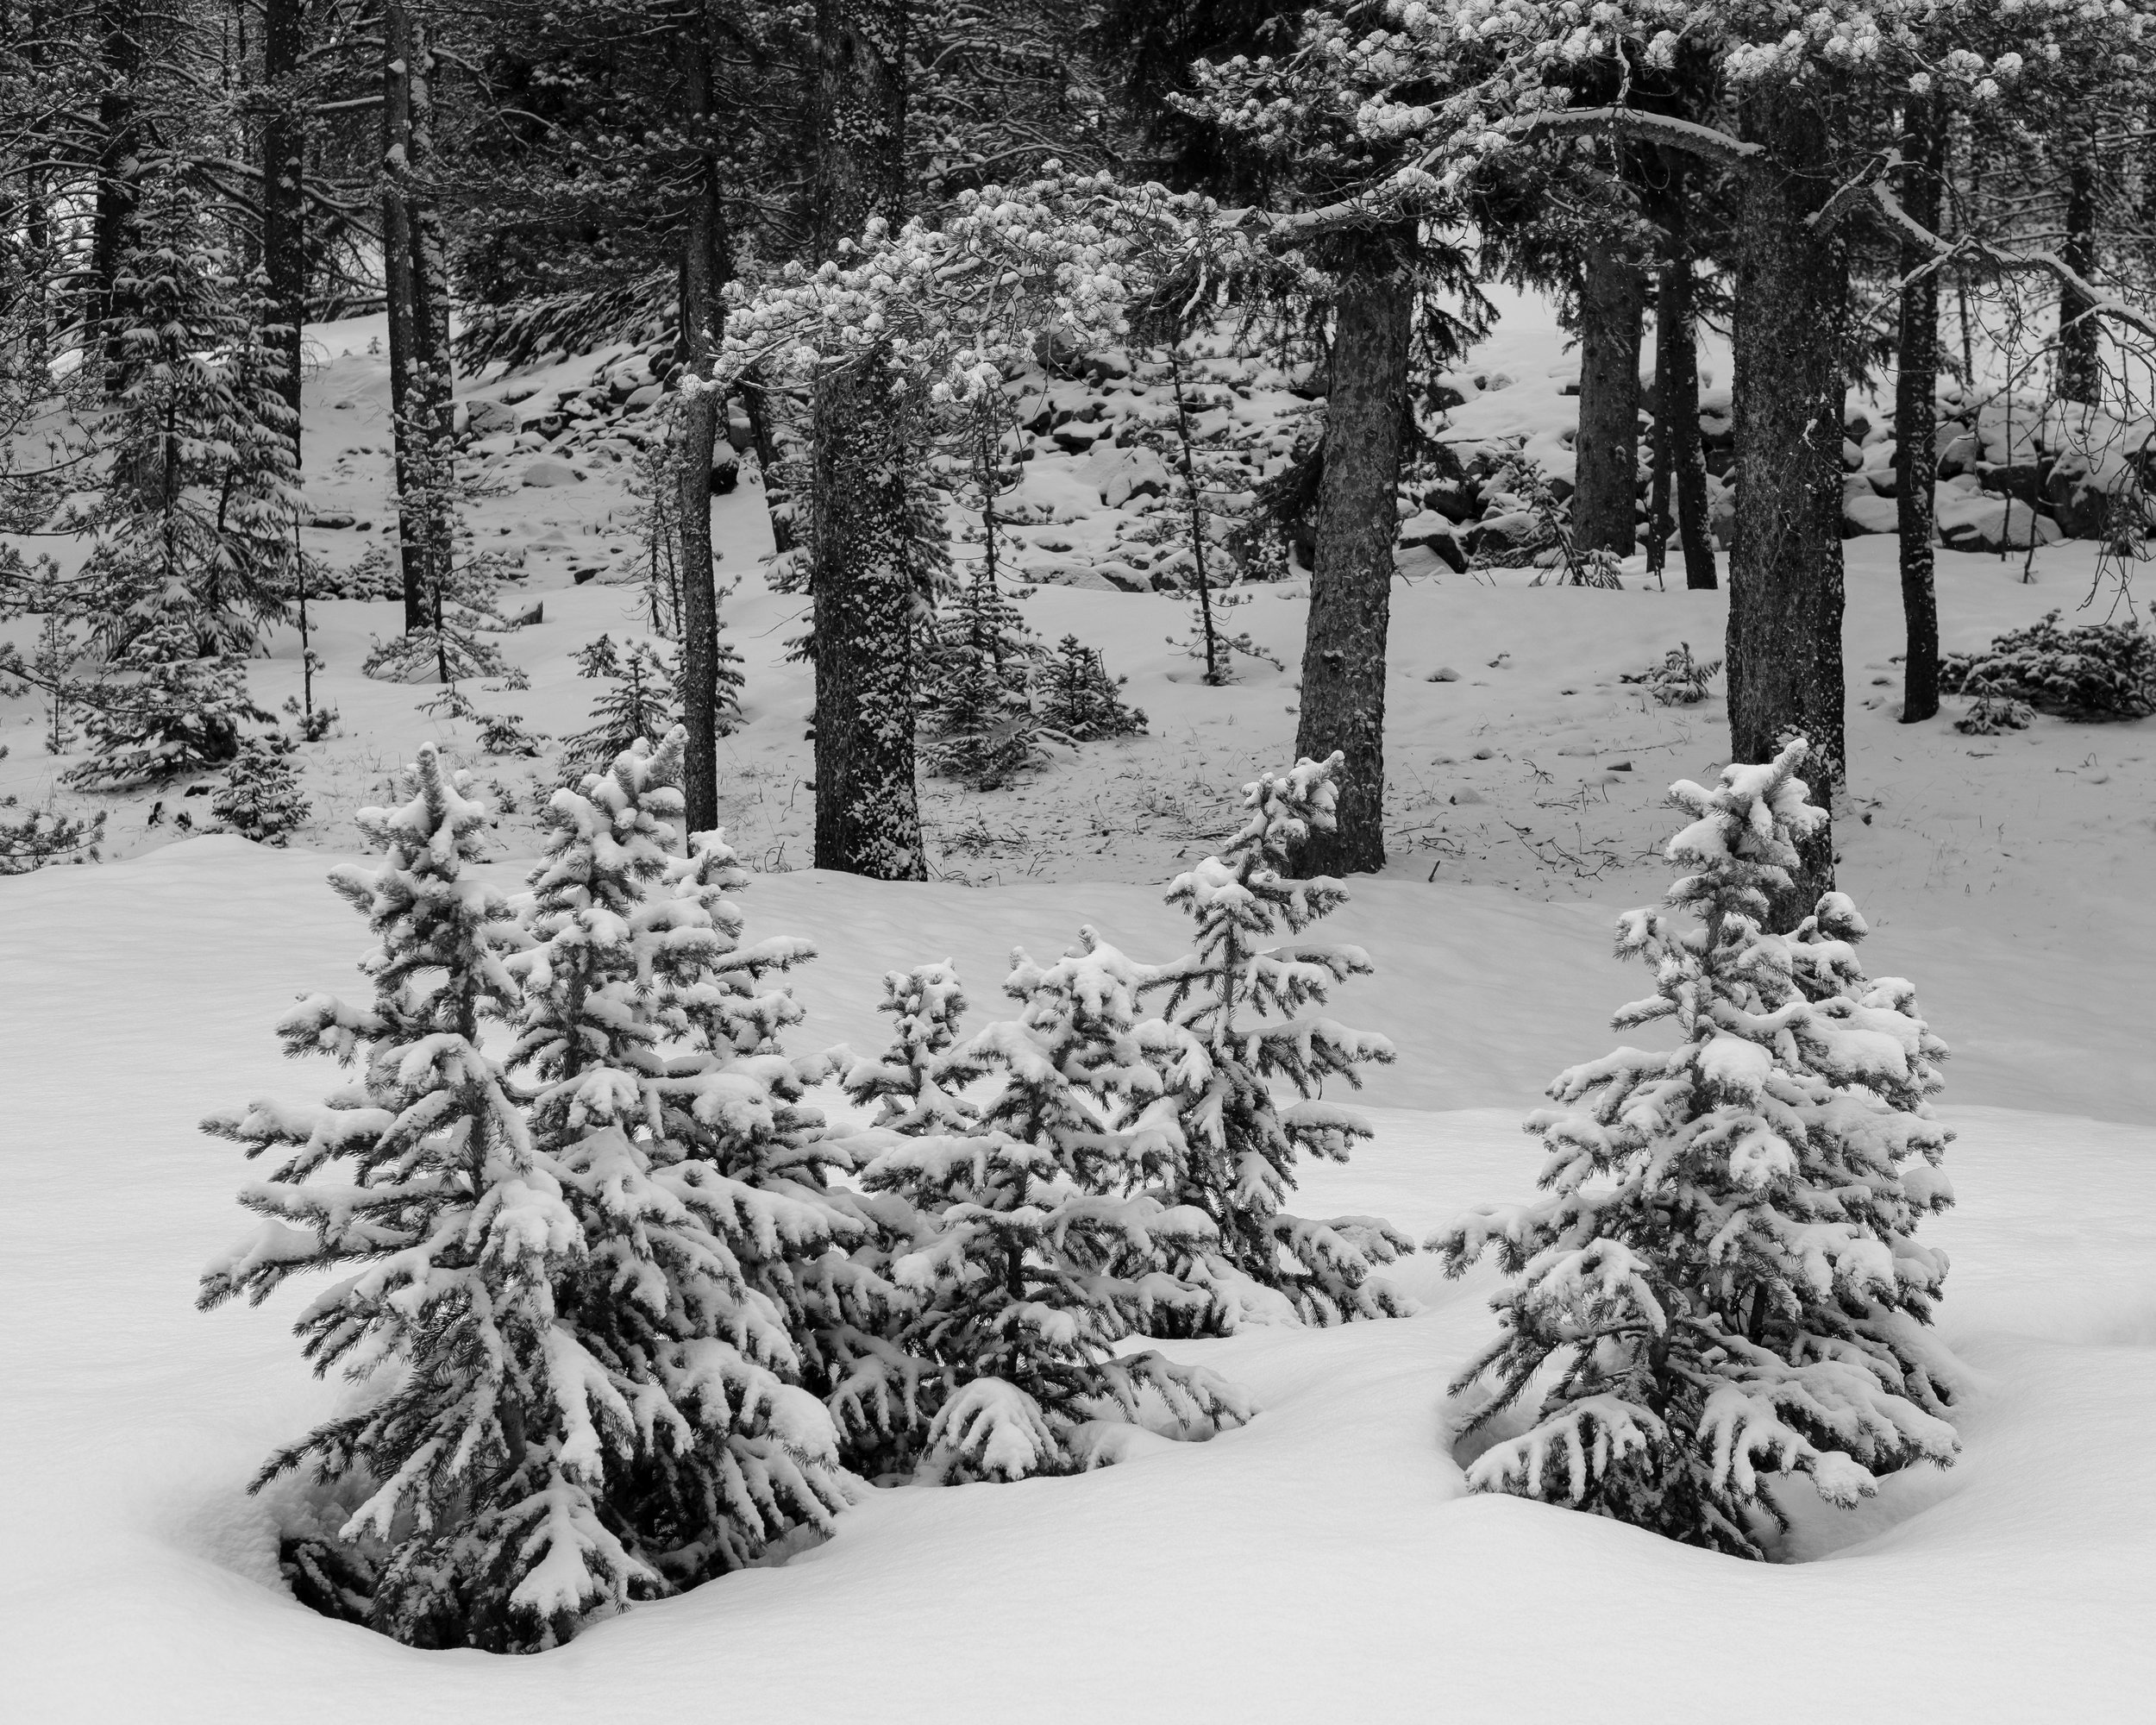 Day 141- 365 Day B&W Photo Challenge - It's the middle of May and we get a fresh layer of powder in the San Isabel National Forest.. - Fuji X-T3, XF 35mm f/2, Acros R Film Simulation